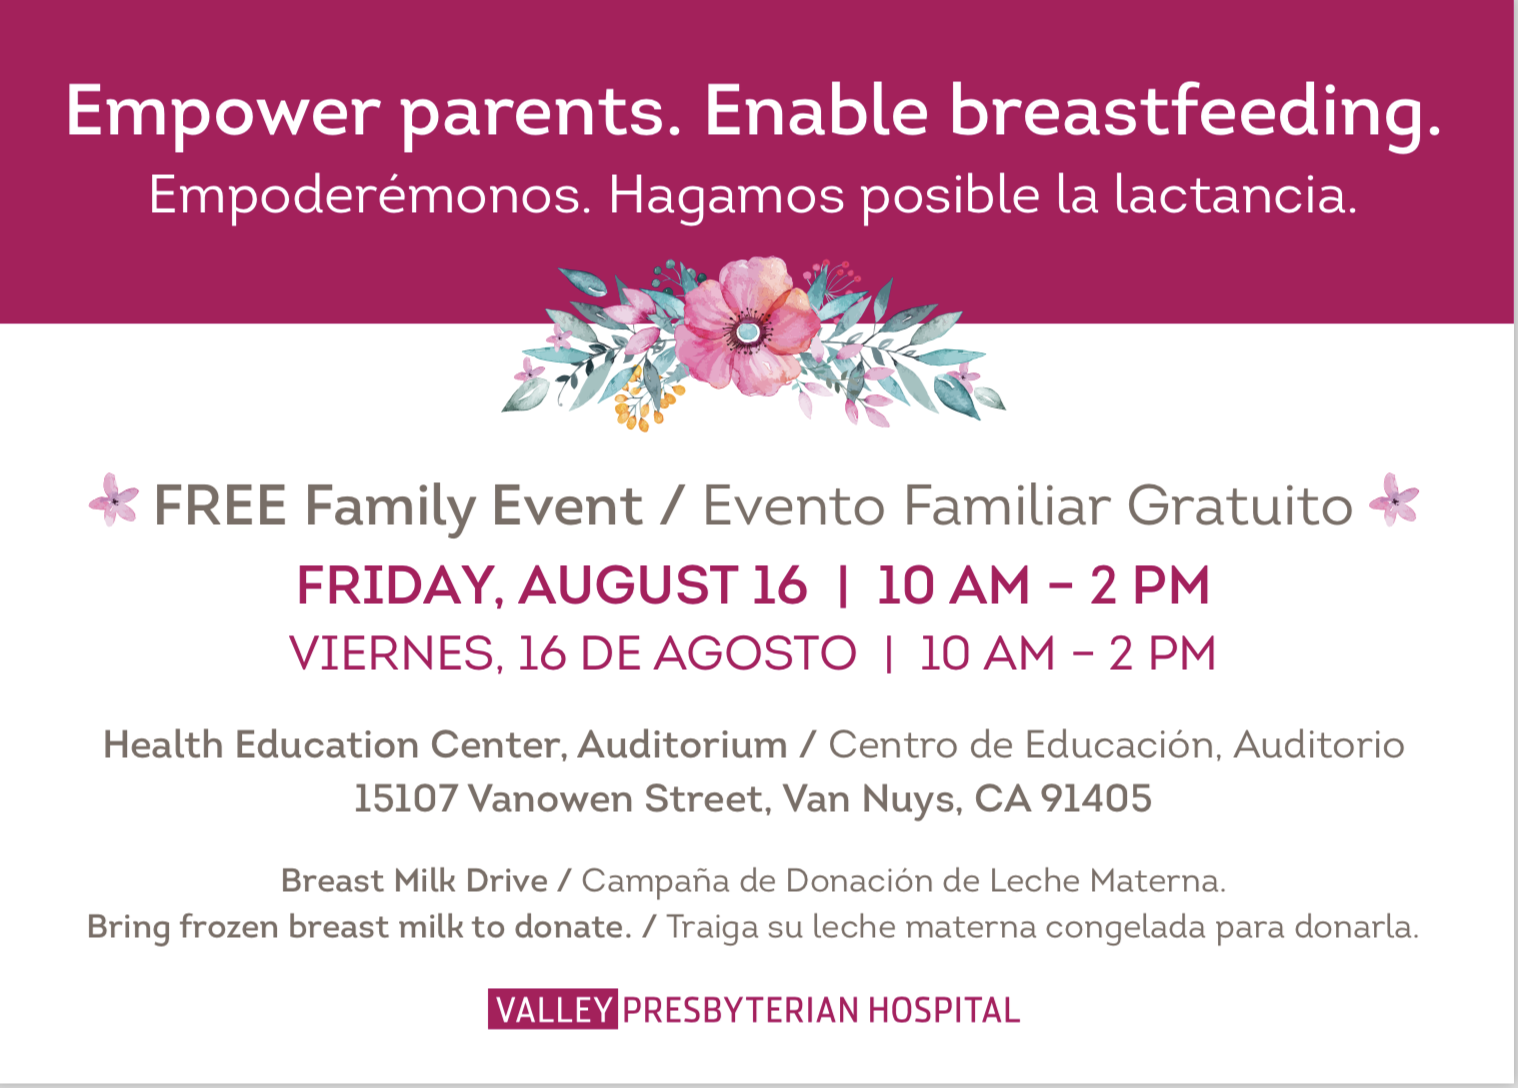 Empower Parents. Enable Breastfeeding. Breast Milk Drive. @ Valley Presbyterian Hospital